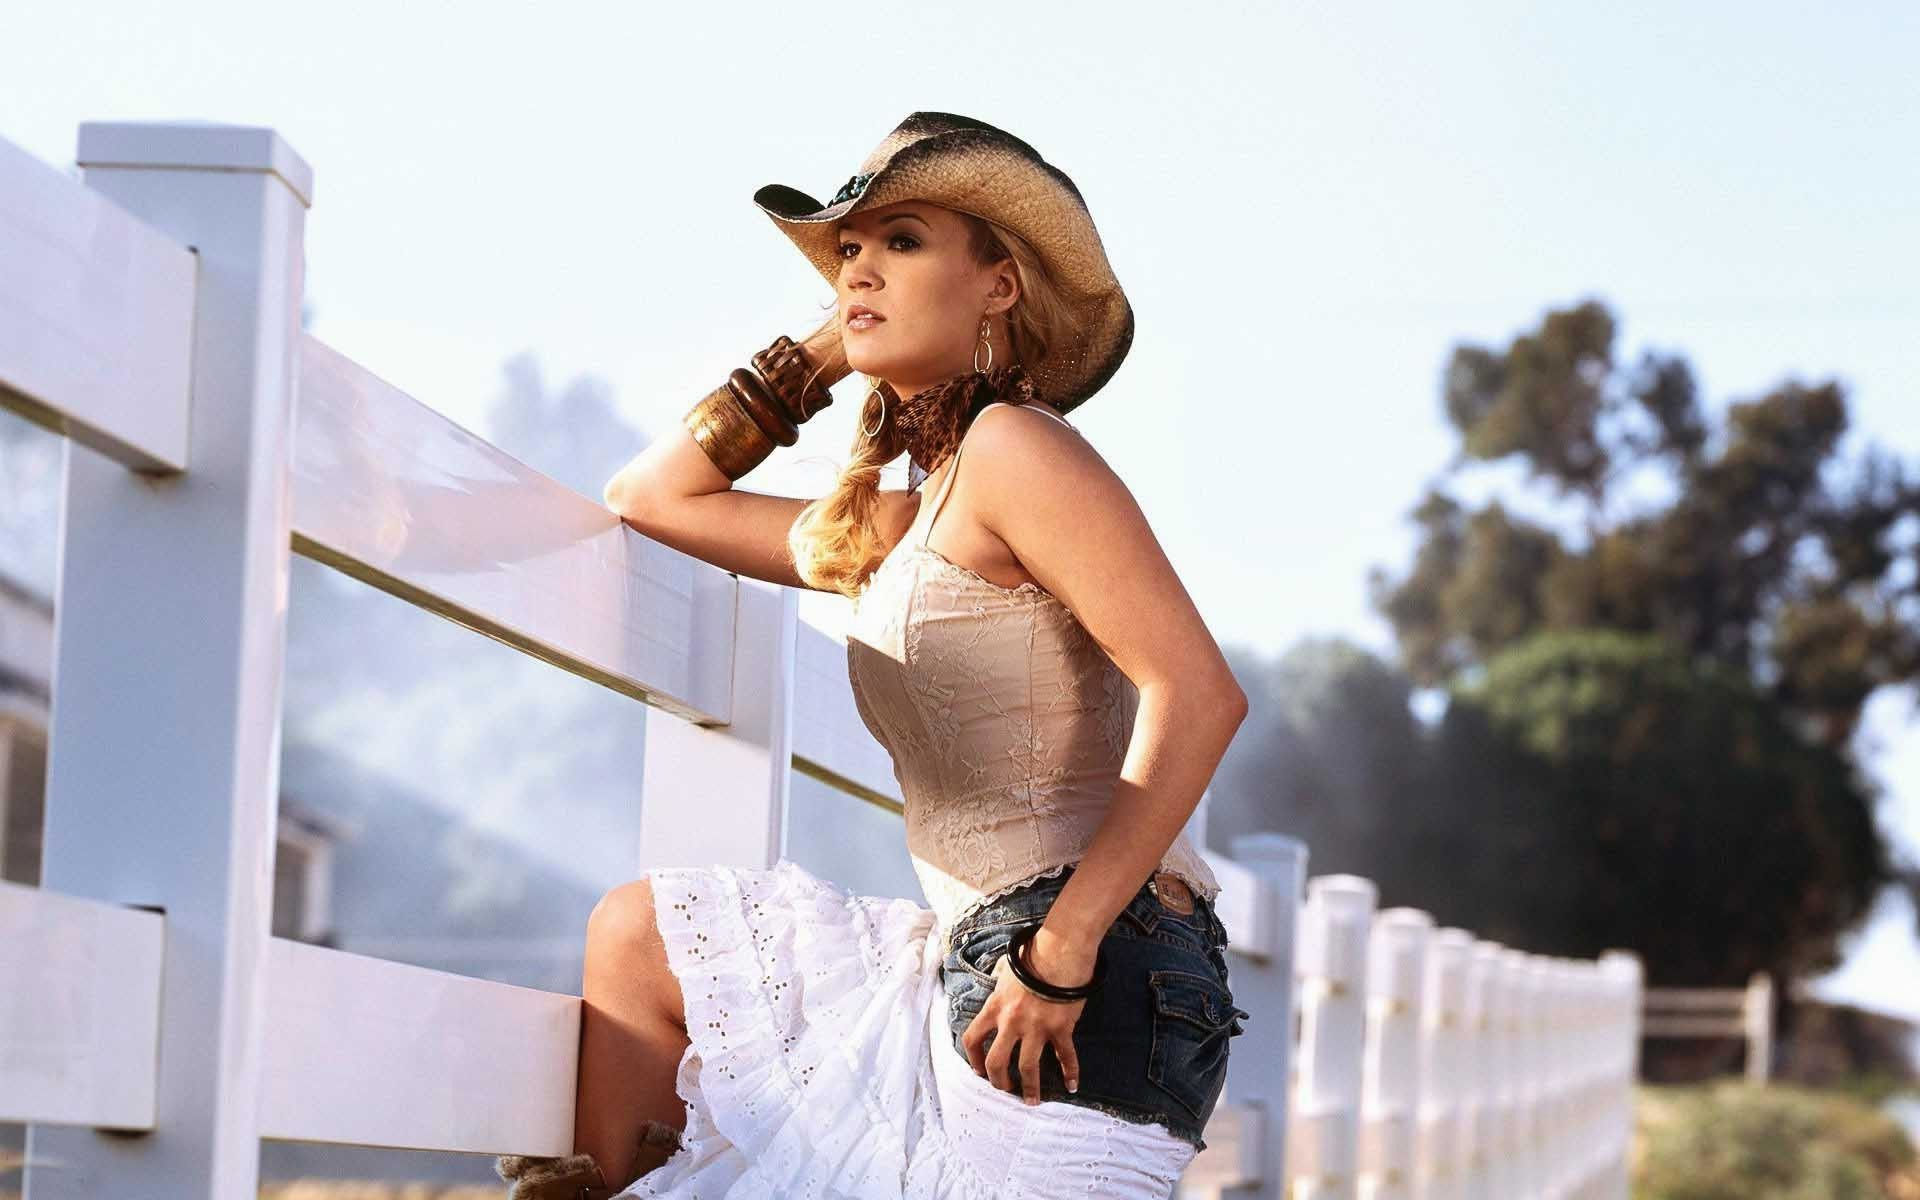 wallpaper.wiki-Backgrounds-girl-with-cowboy-boots-PIC-